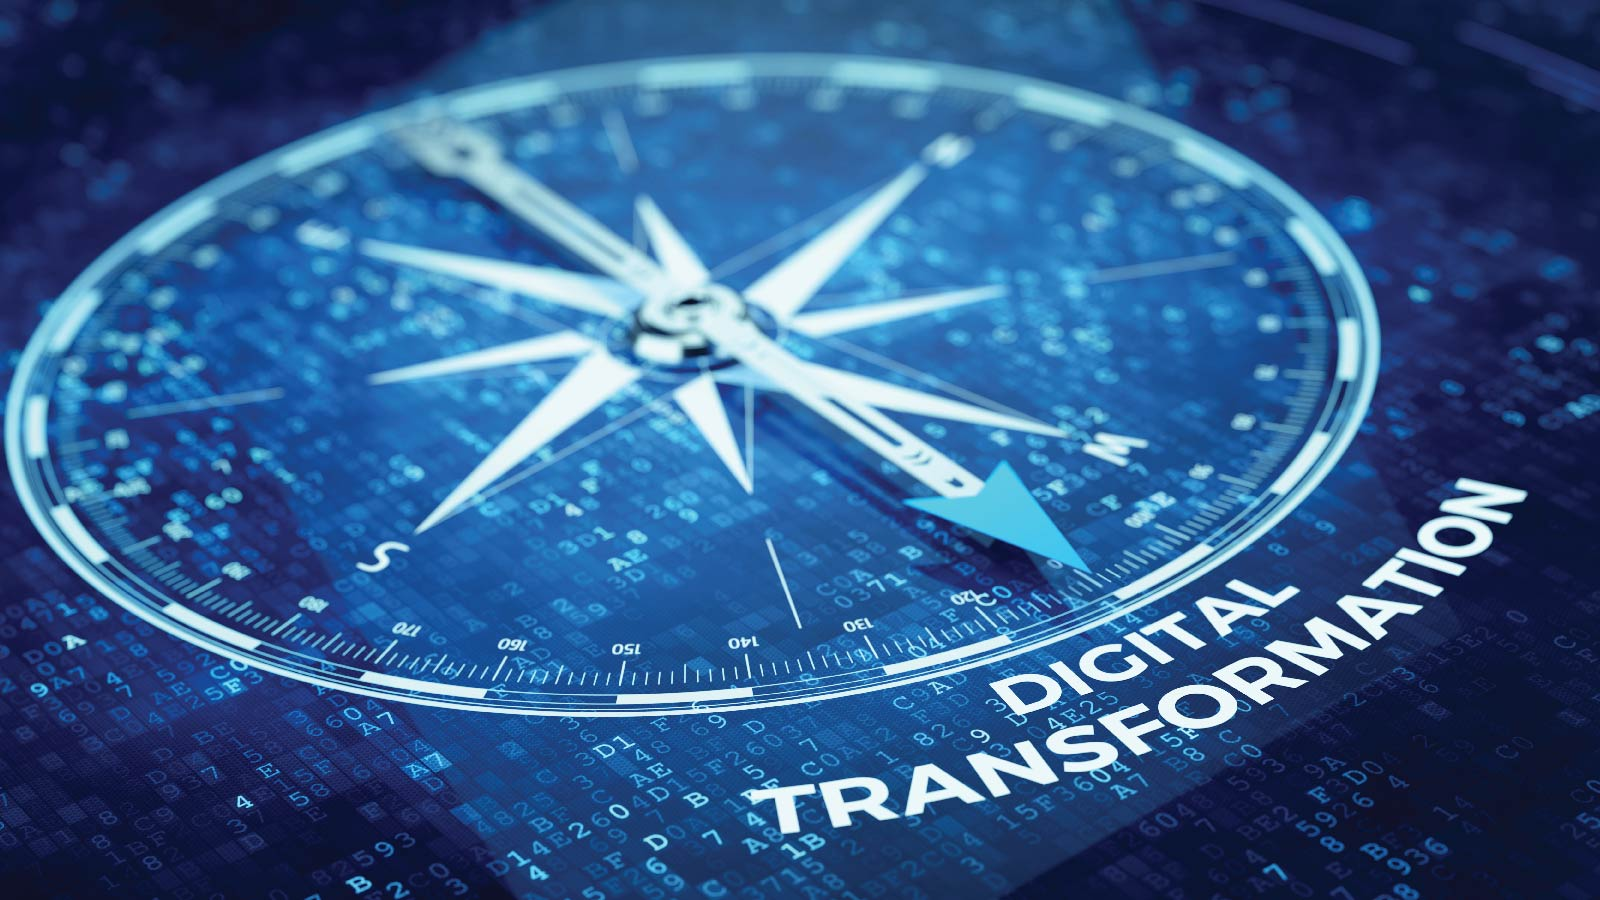 The essential questions to be asked for successful digital transformation